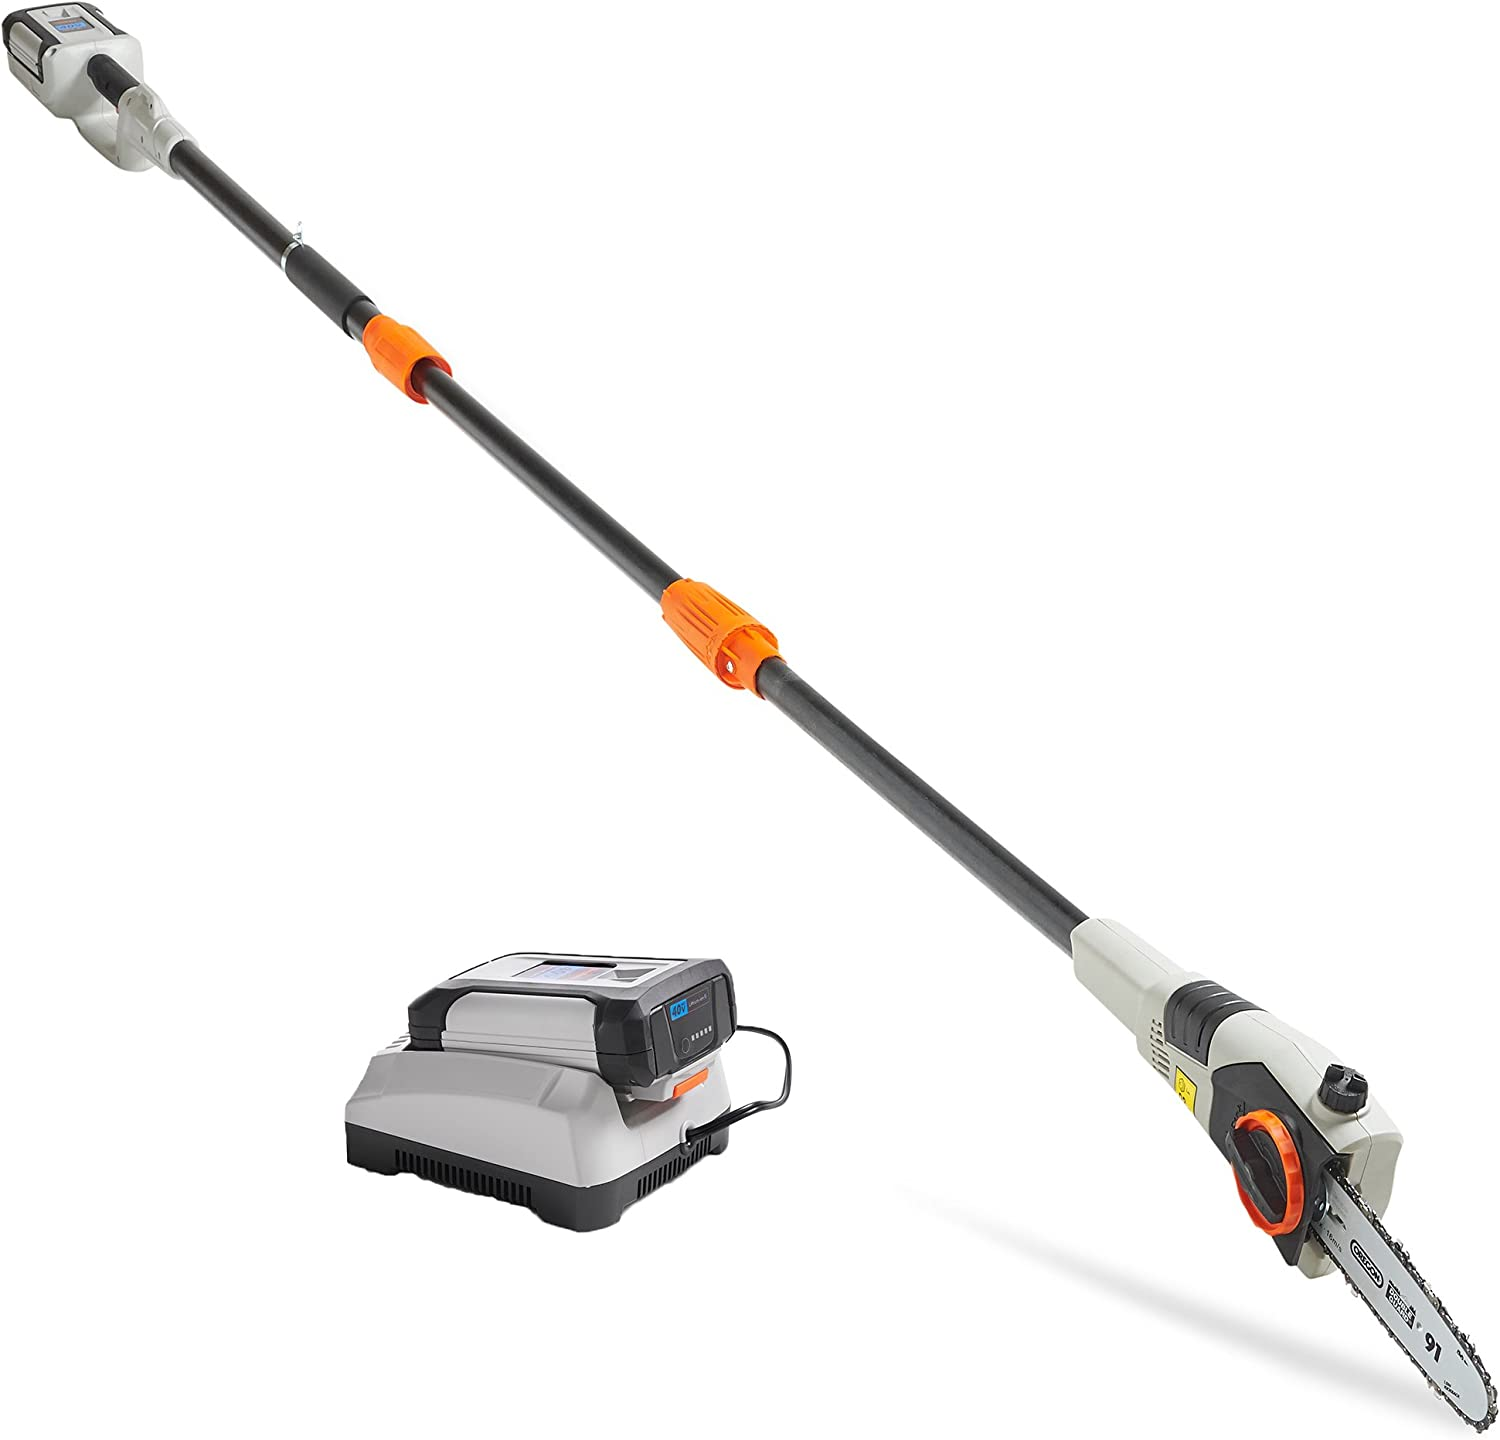 "VonHaus 40V Max 8"" Cordless Pole Saw"